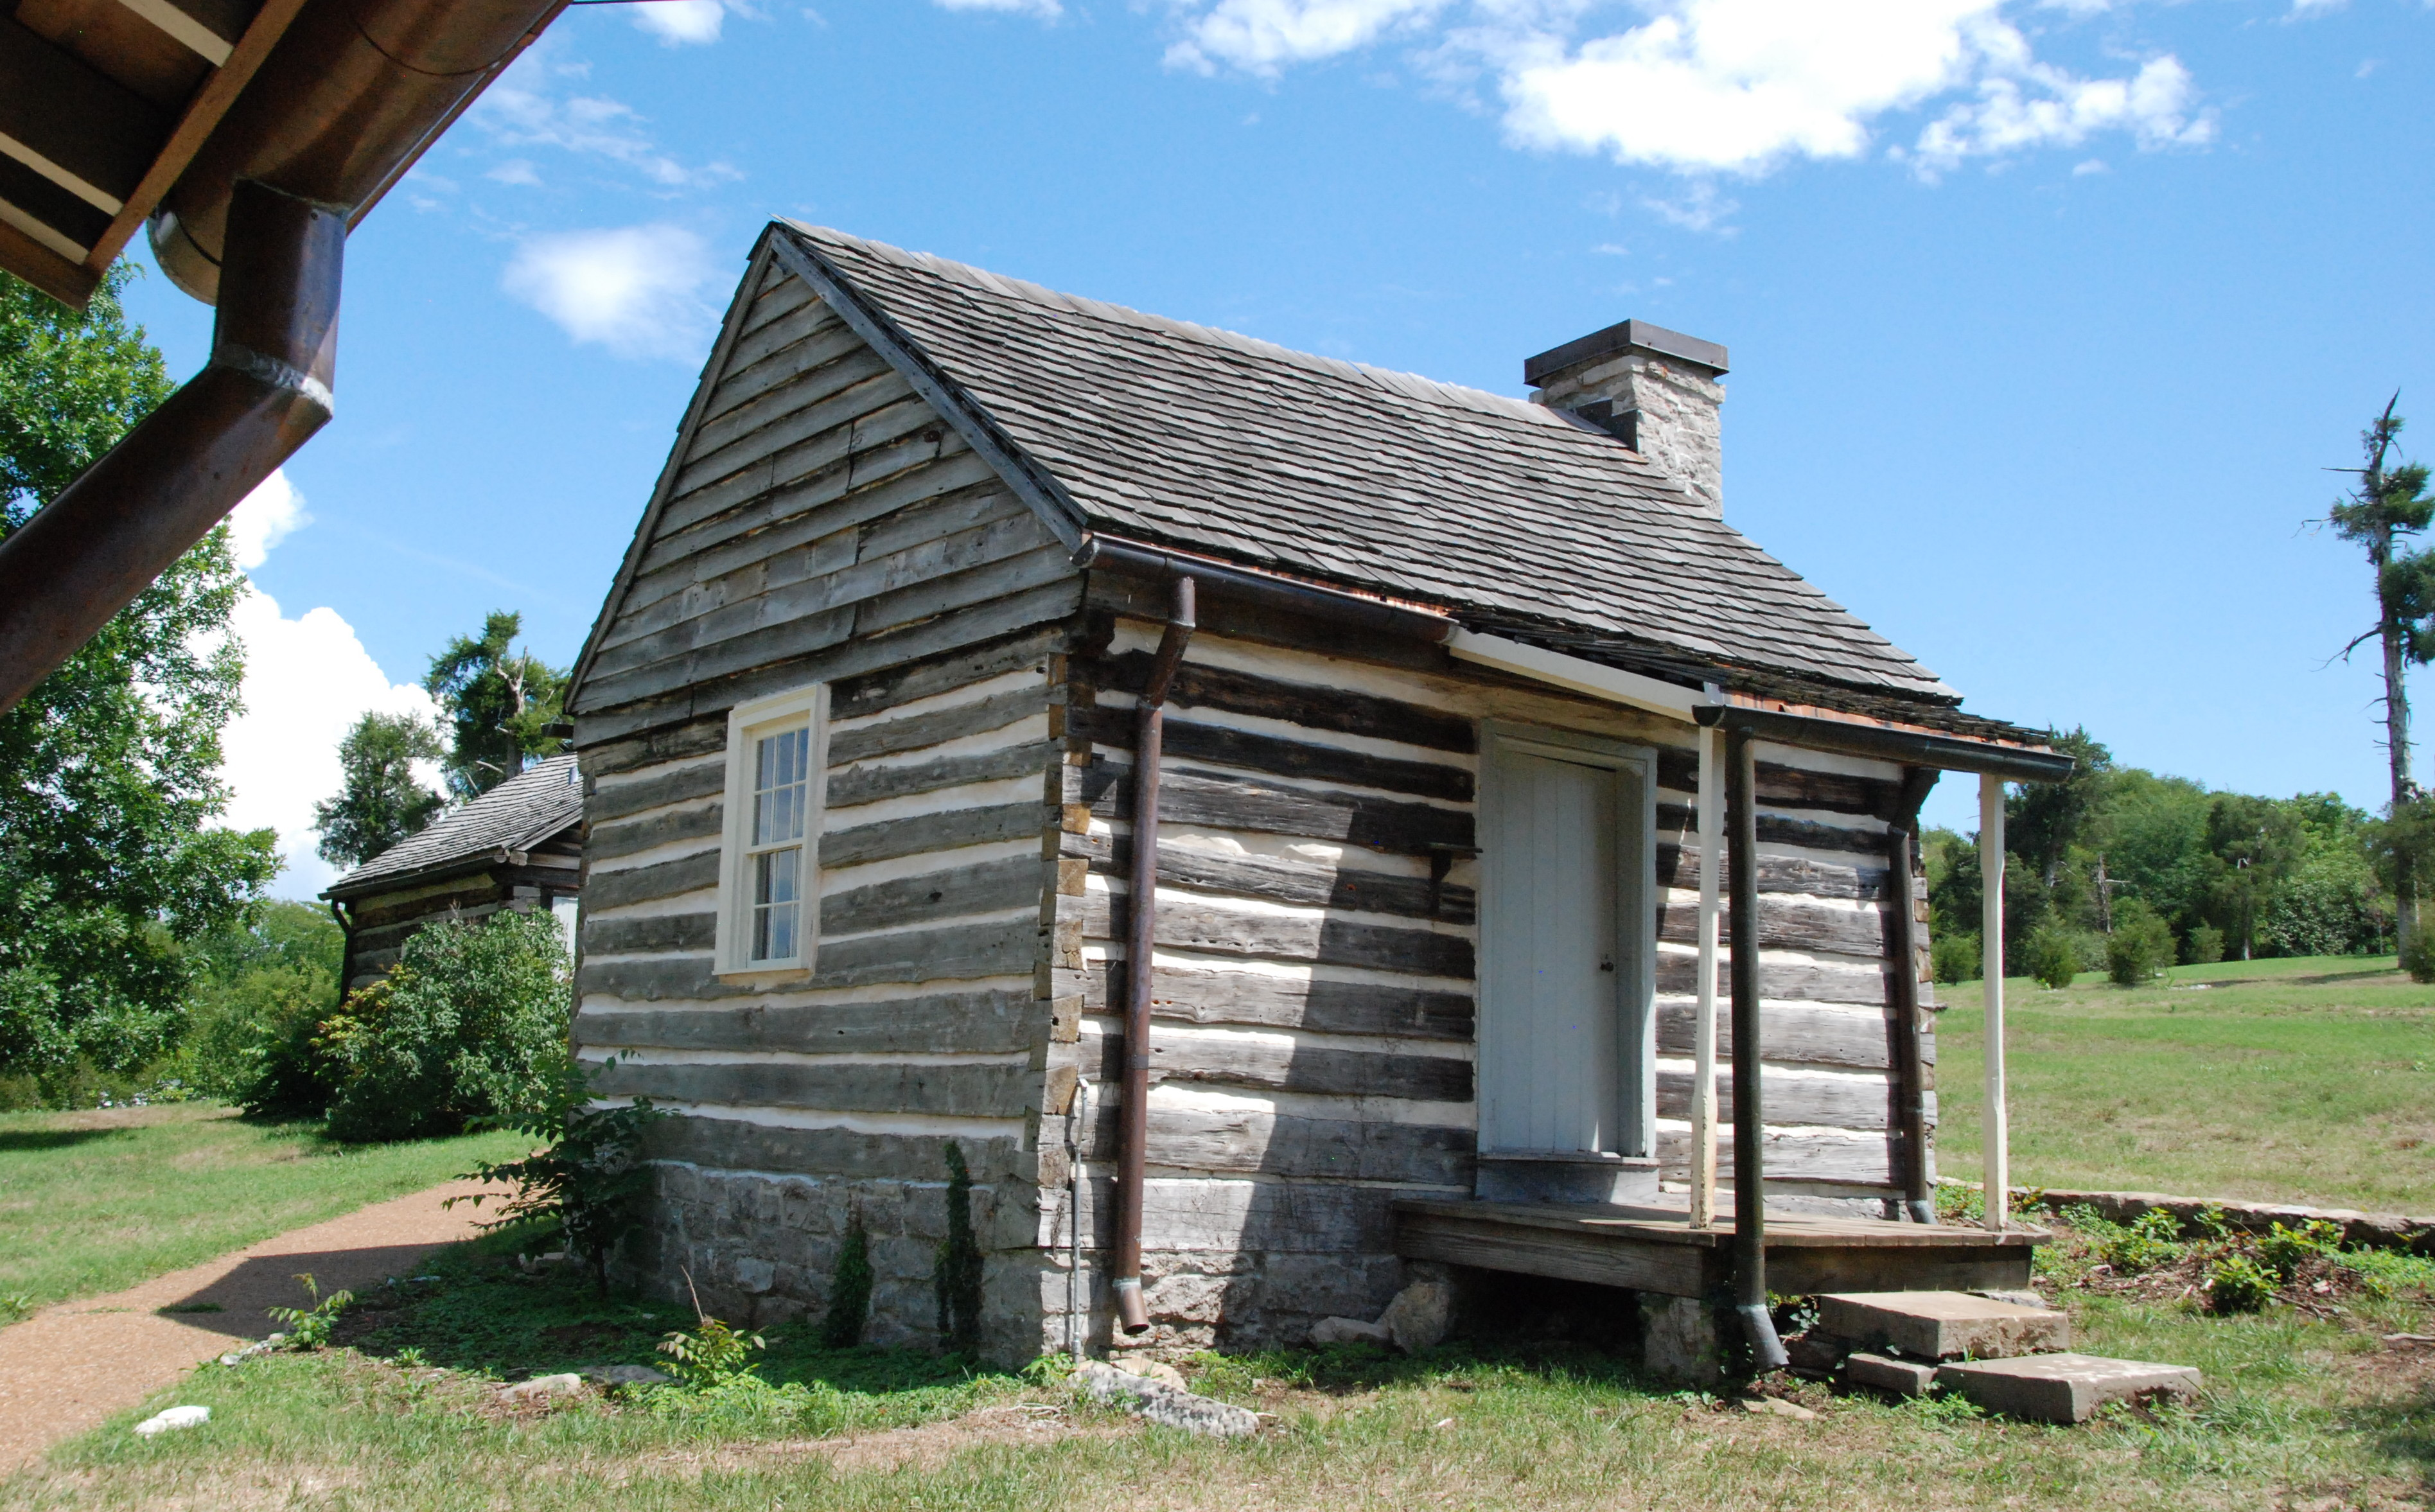 One of the few remaining outbuildings at Wynnewood.